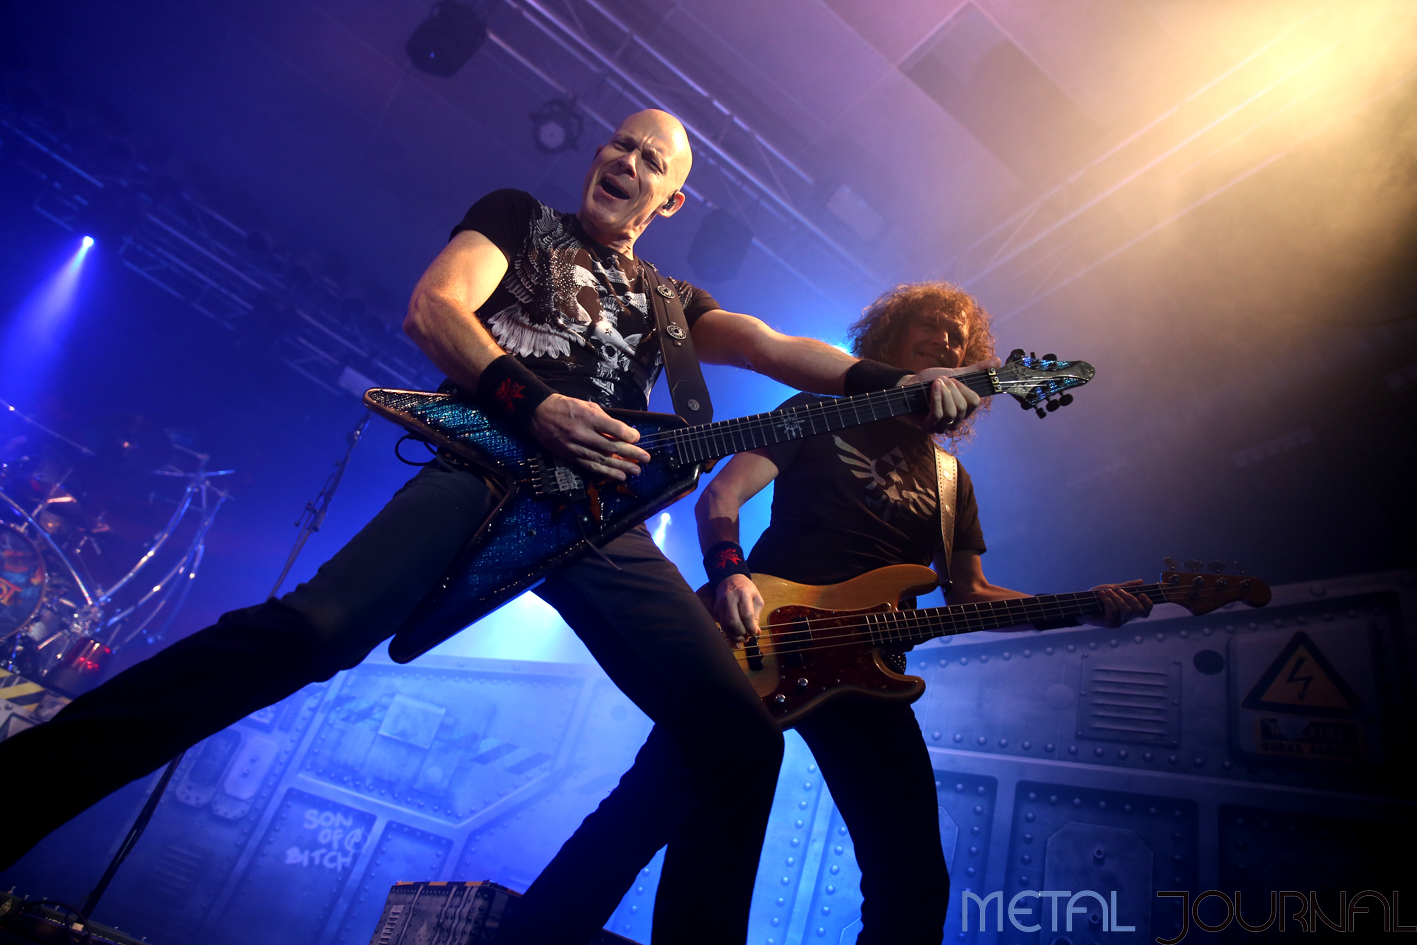 accept - metal journal 2018 pic 9